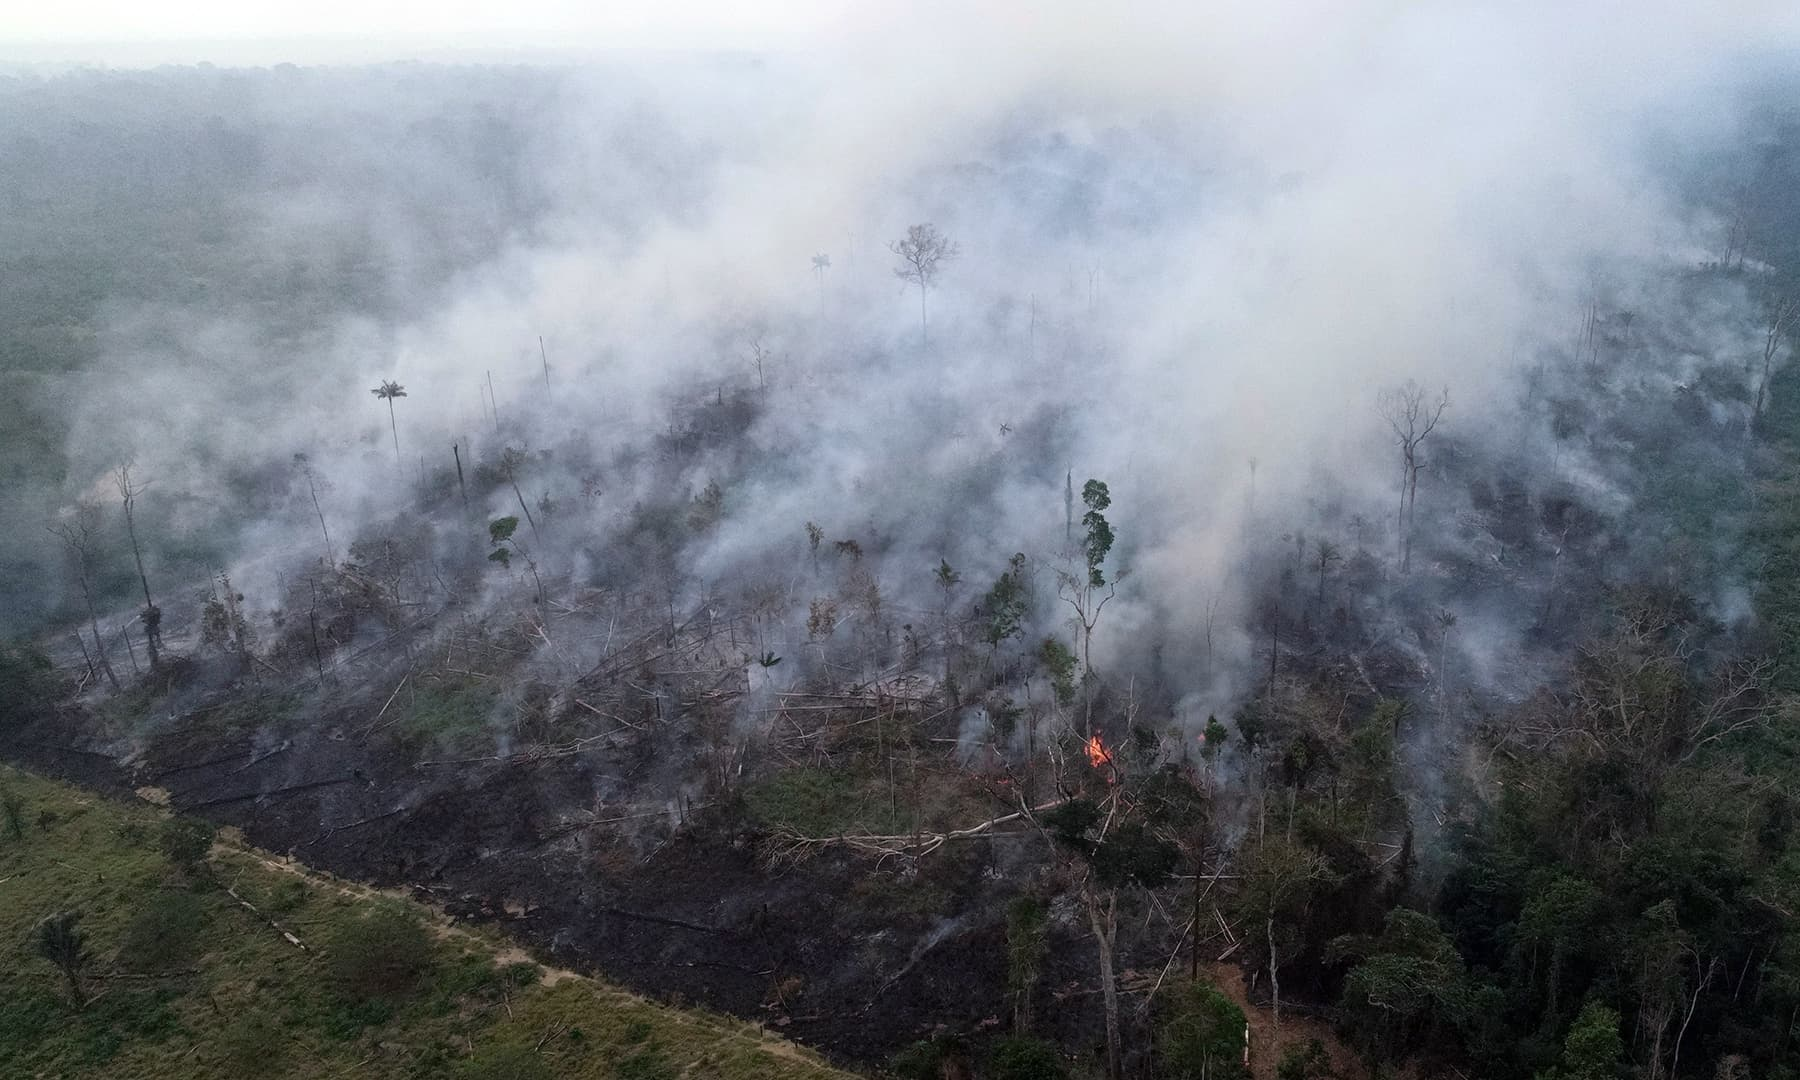 An aerial view of a tract of the Amazon jungle burning as it is being cleared by loggers and farmers in Porto Velho, Rondonia State, Brazil, is pictured in this August 23, 2019 picture taken with a drone. — Reuters